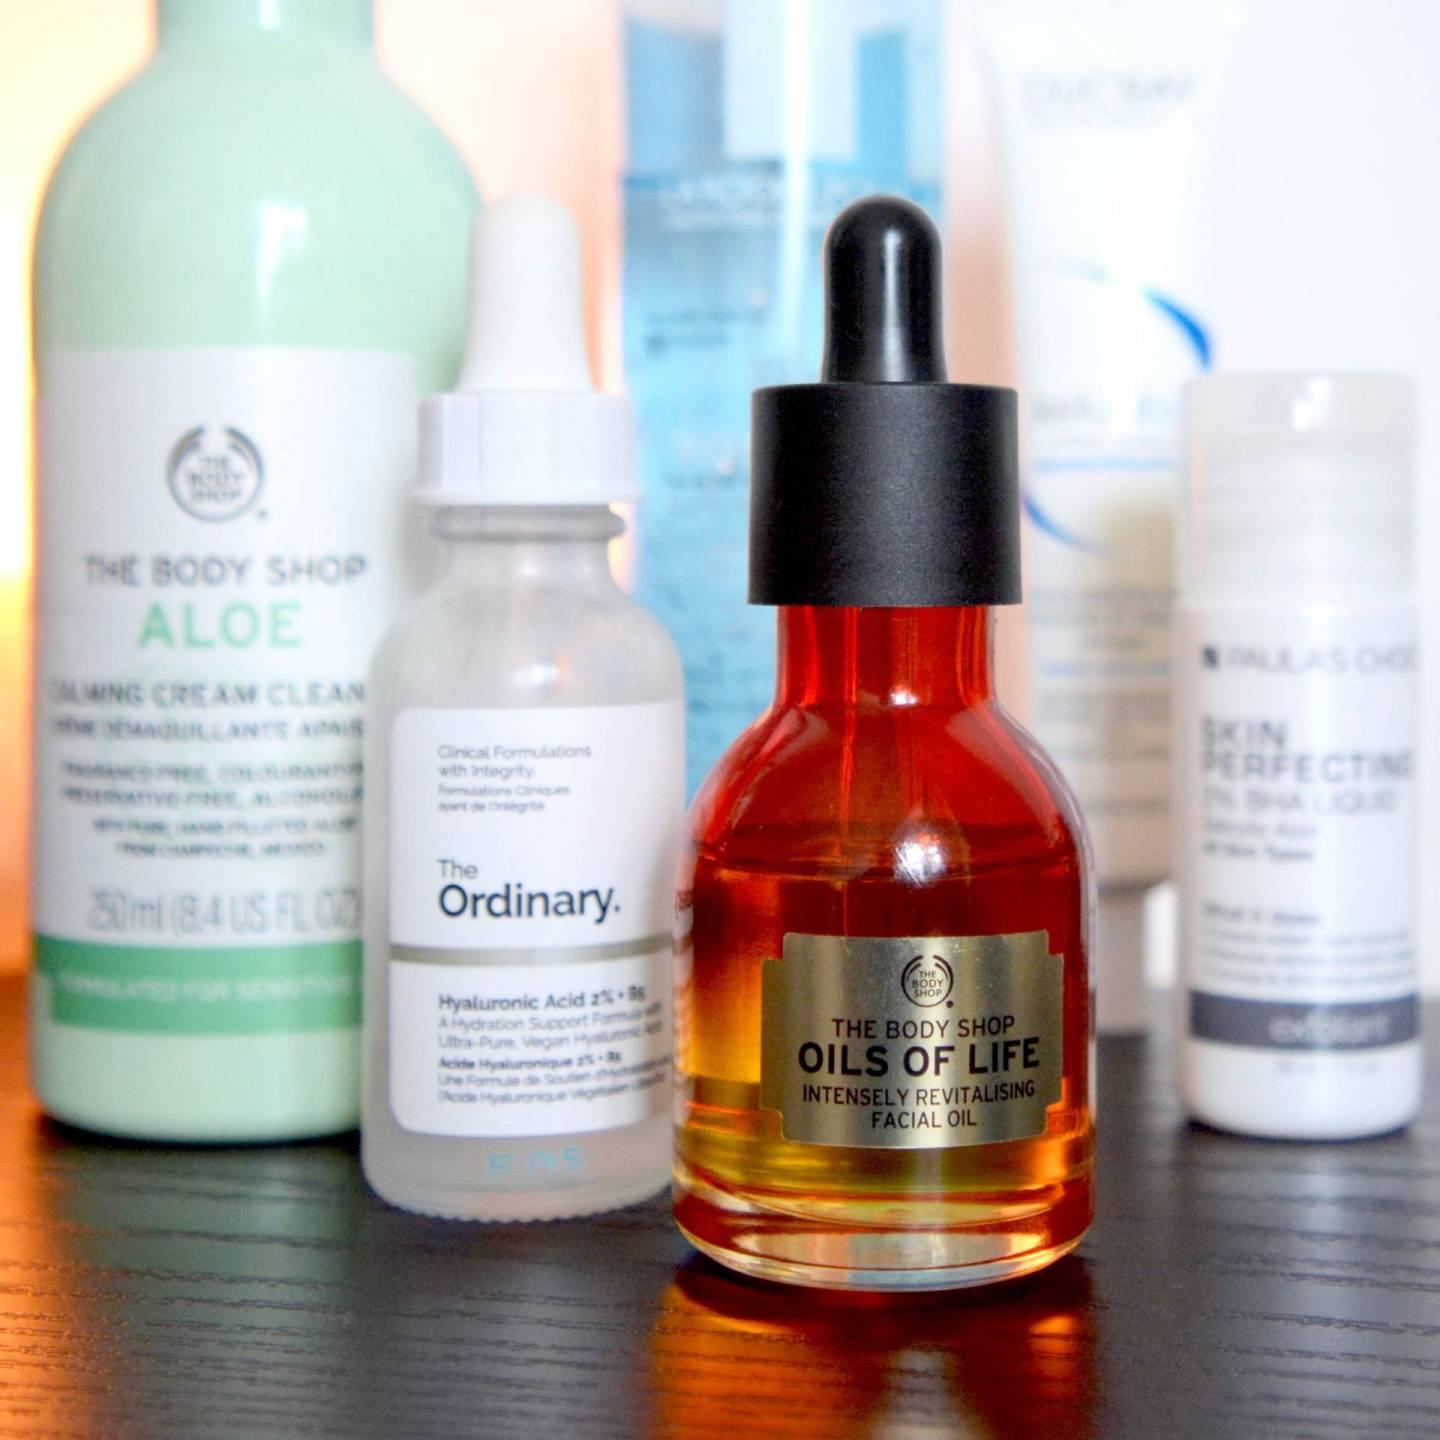 Skincare for rosacea and sensitive skin - The Body Shop Oils Of Life Intensely Revitalising Facial Oil